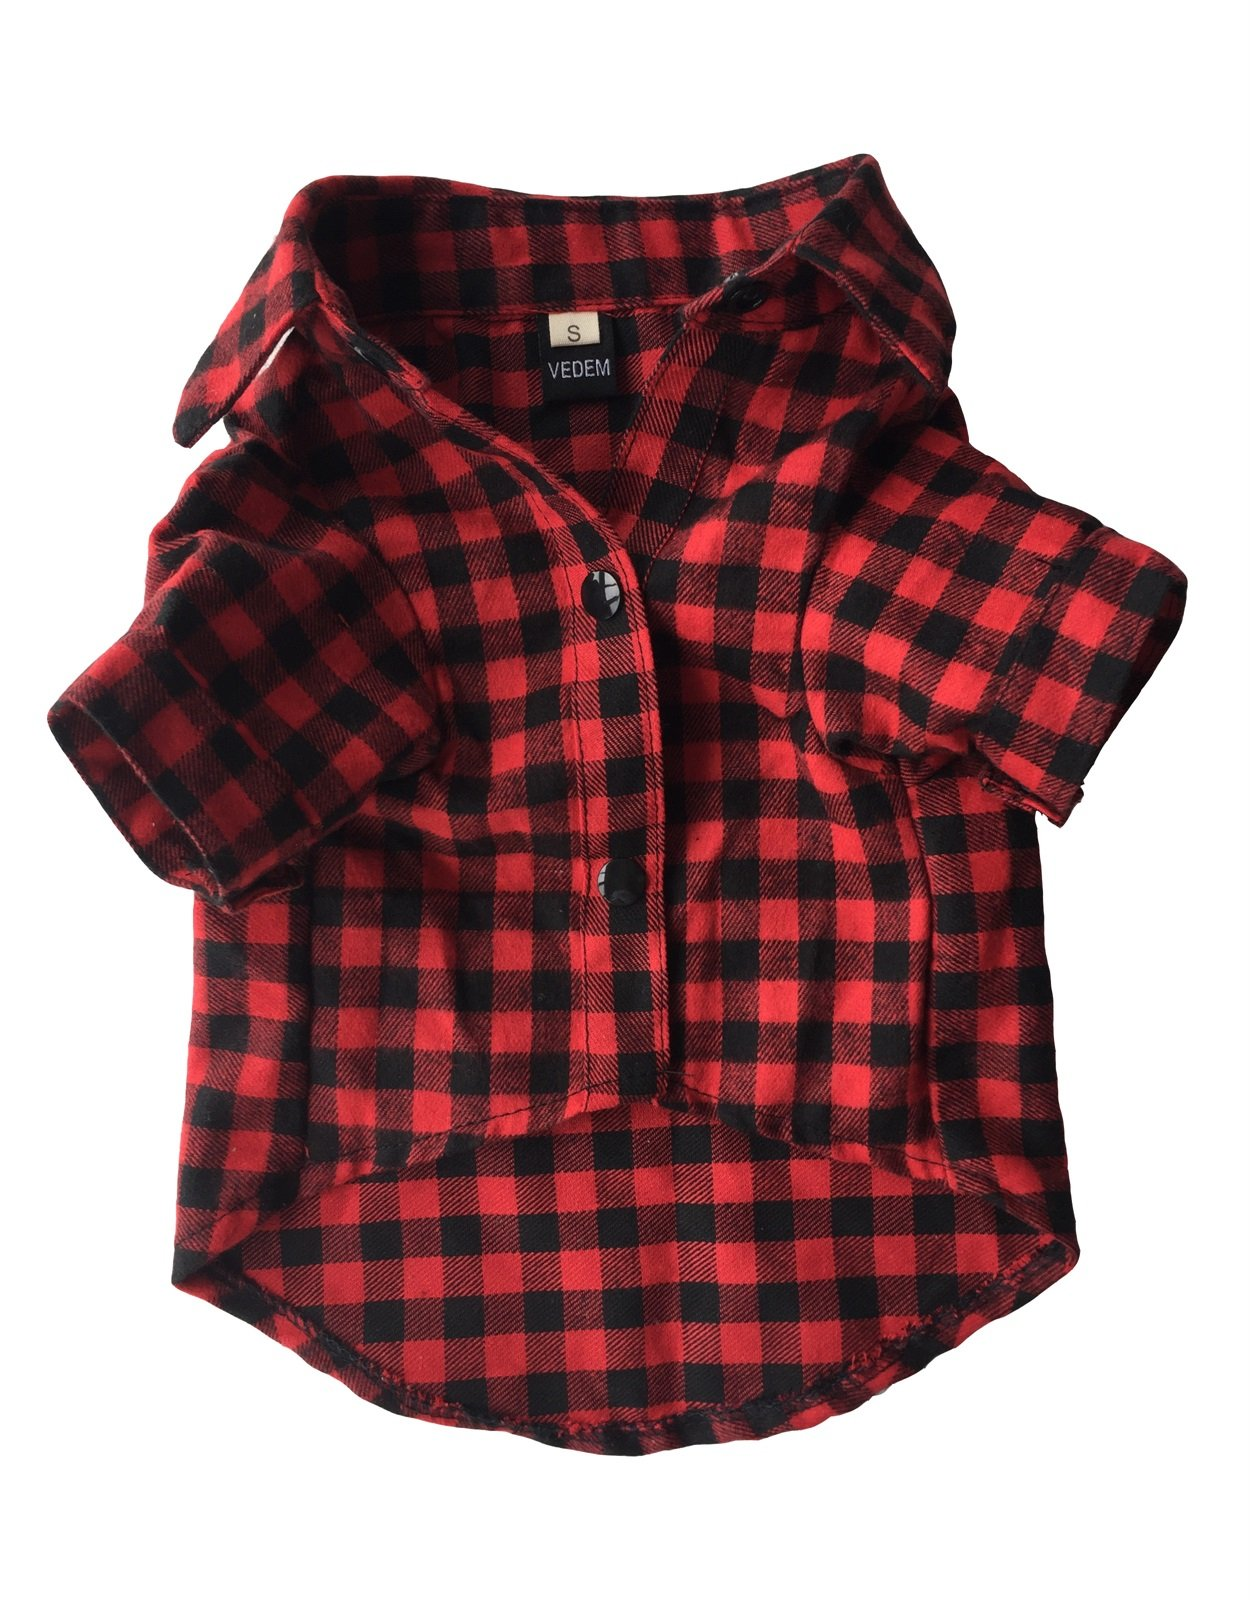 Vedem Casual Dog Plaid Shirt Cotton Pet Western Short Sleeve Shirts Wedding Clothes (S, Red Black)